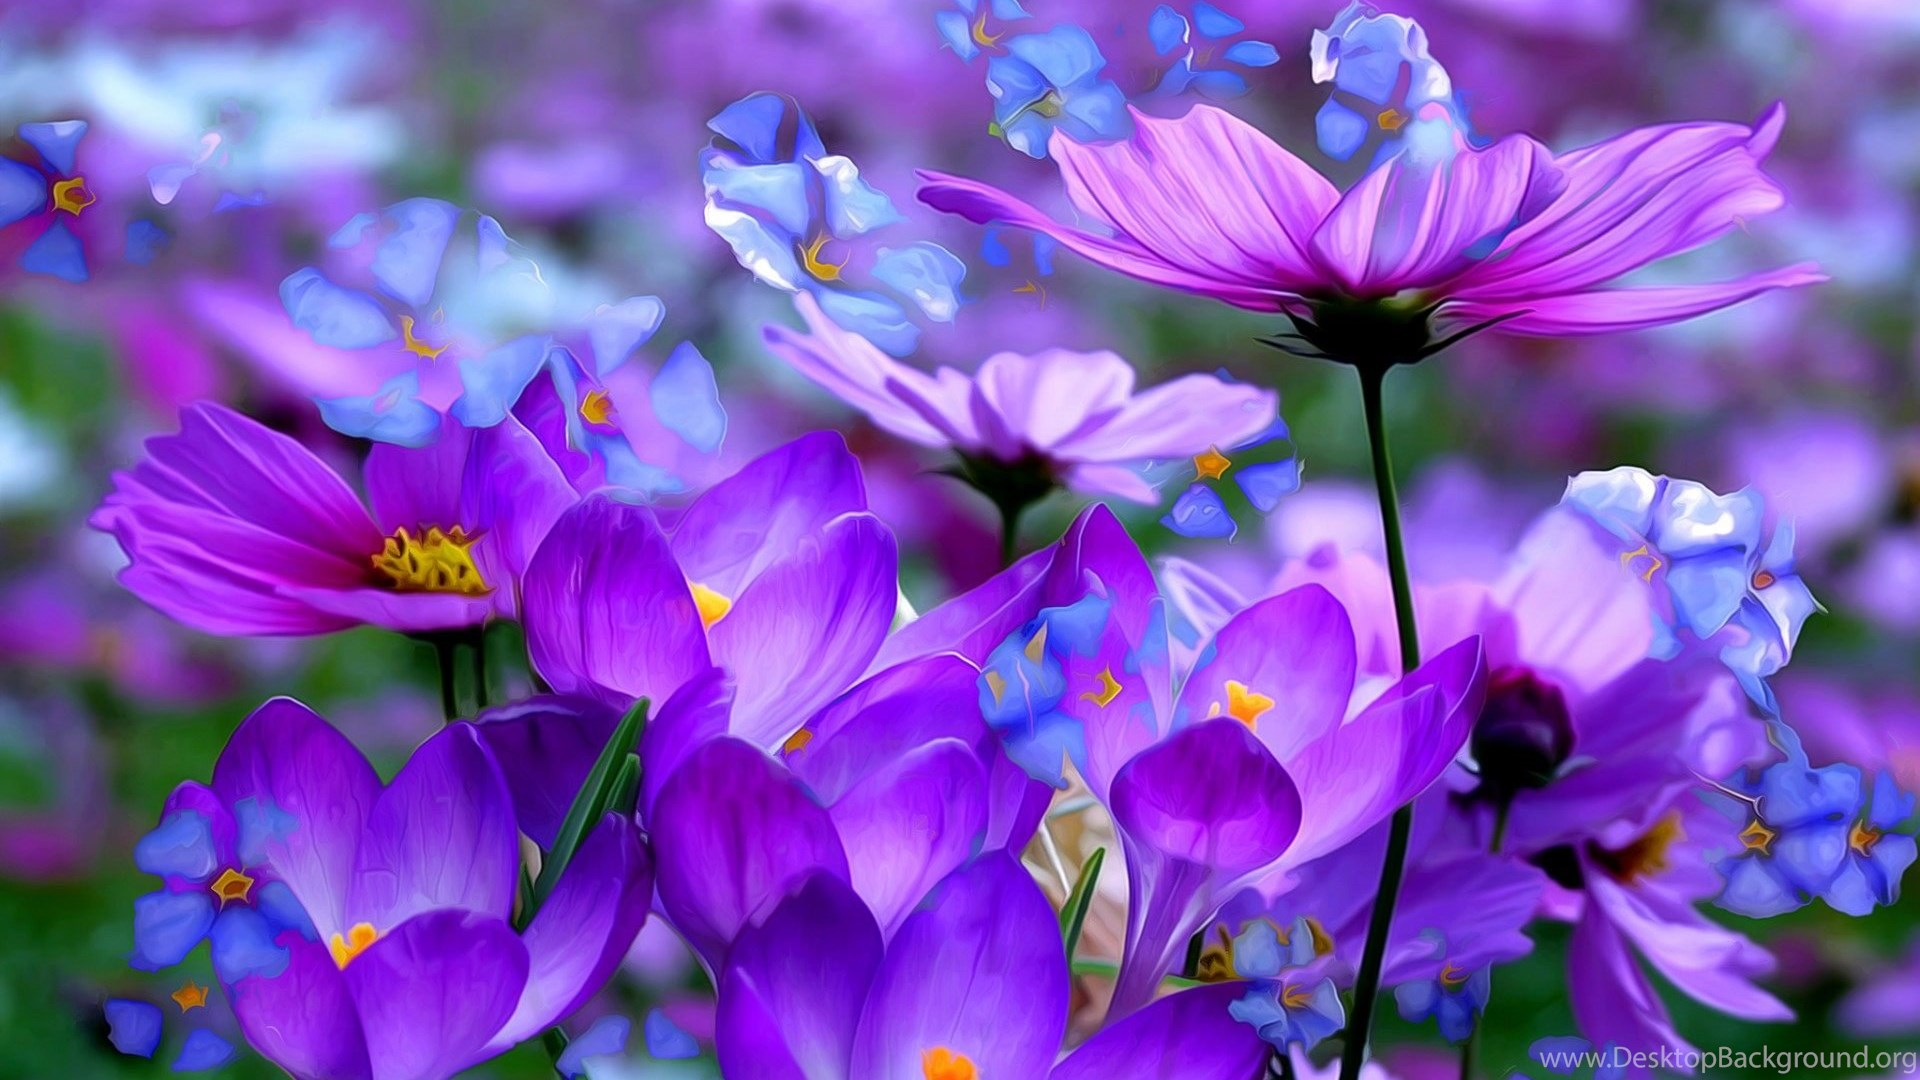 purple flowers blooming hd wallpapers for desktop & mobile desktop